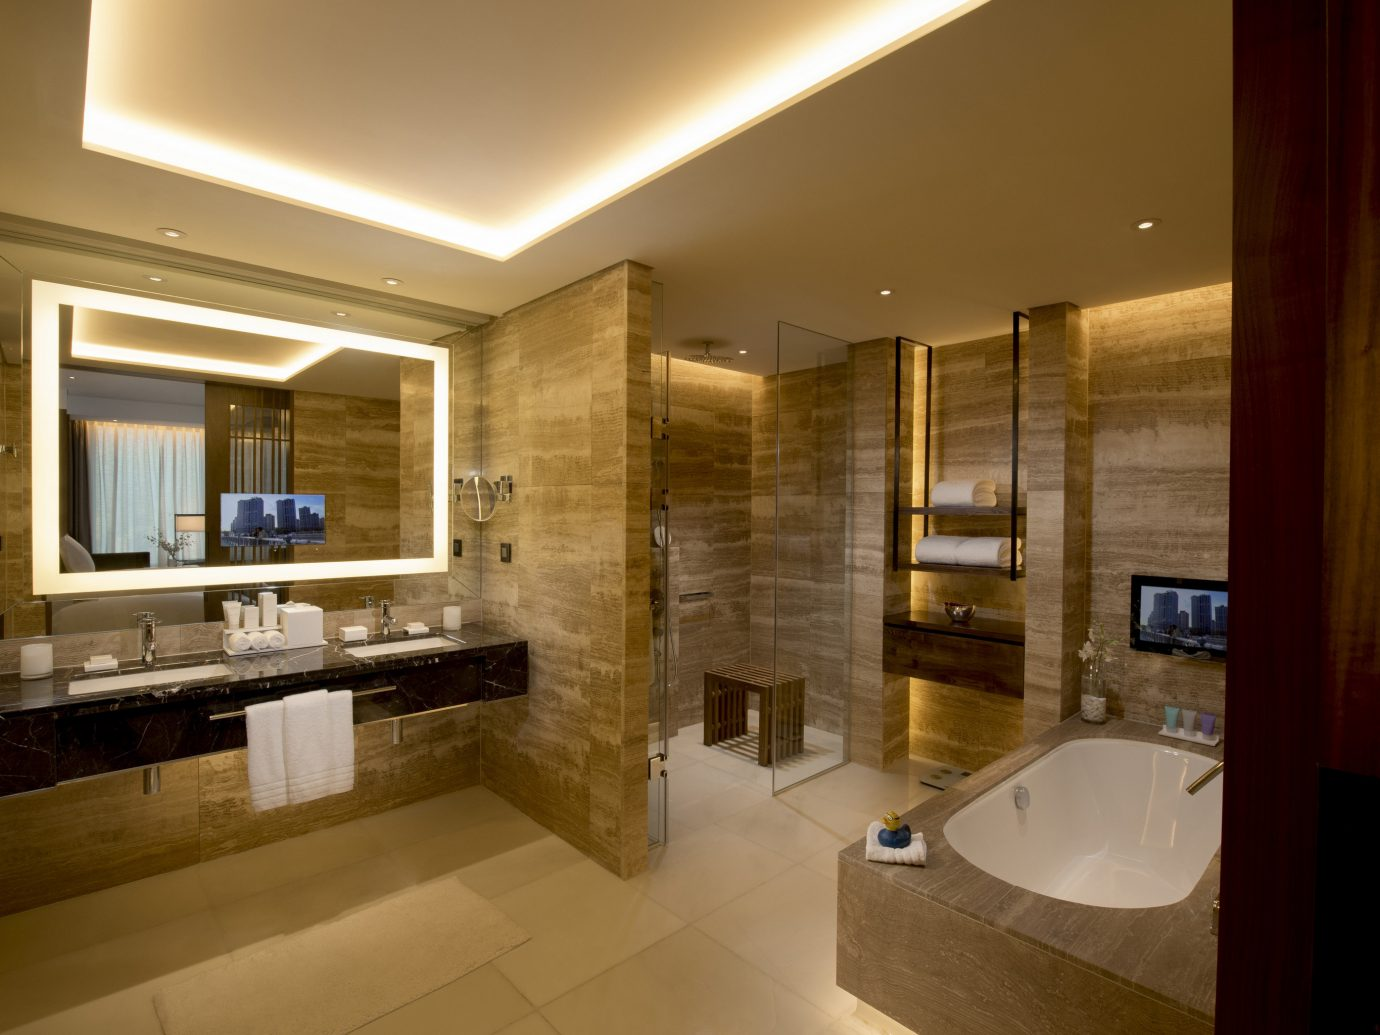 Hotels Luxury Travel indoor wall bathroom ceiling floor mirror sink room interior design Architecture window estate real estate counter home interior designer Suite flooring Lobby tile tub Bath